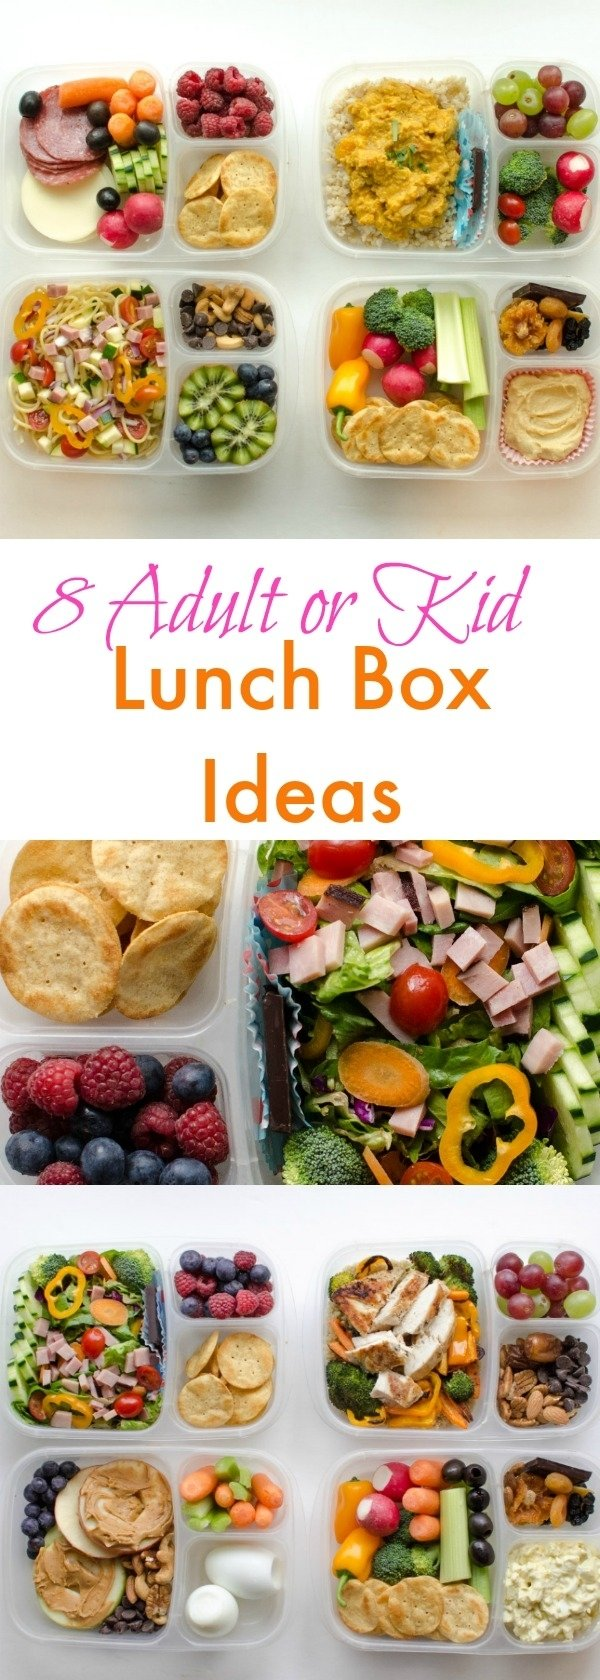 10 Unique Healthy Packed Lunch Ideas For Adults 8 adult lunch box ideas bless this mess 17 2021